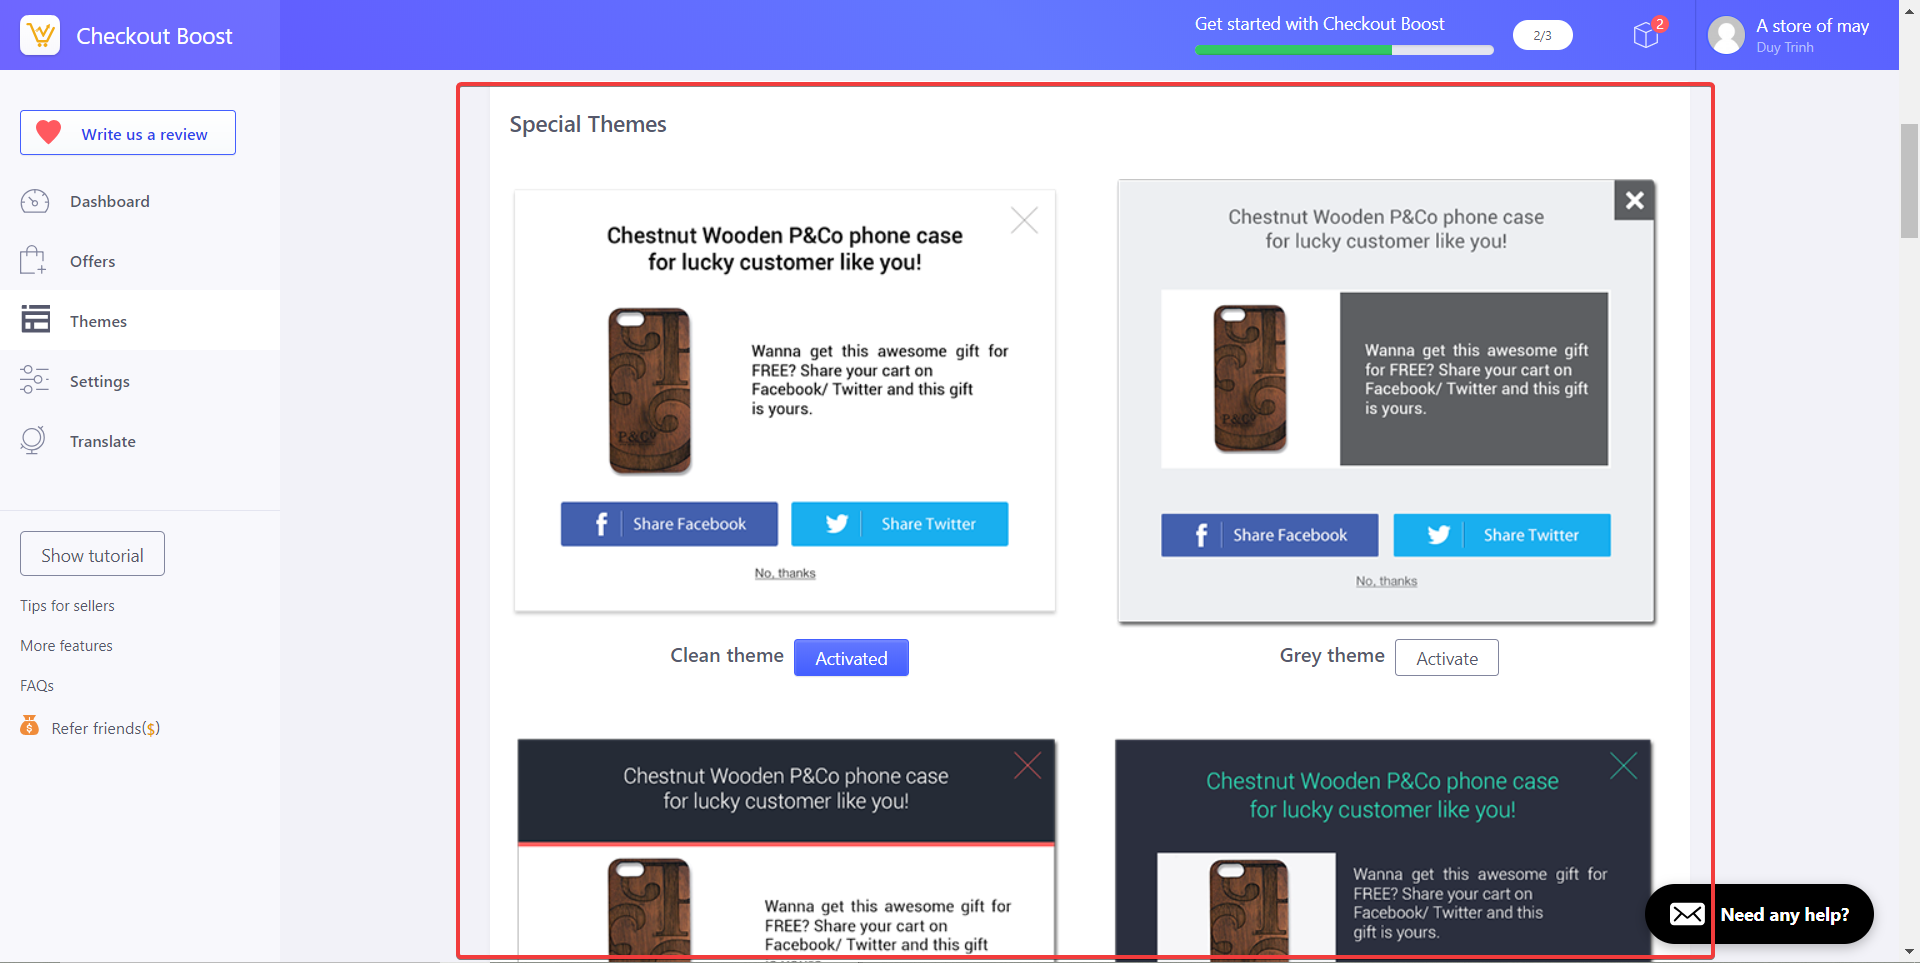 Checkout Boost special theme